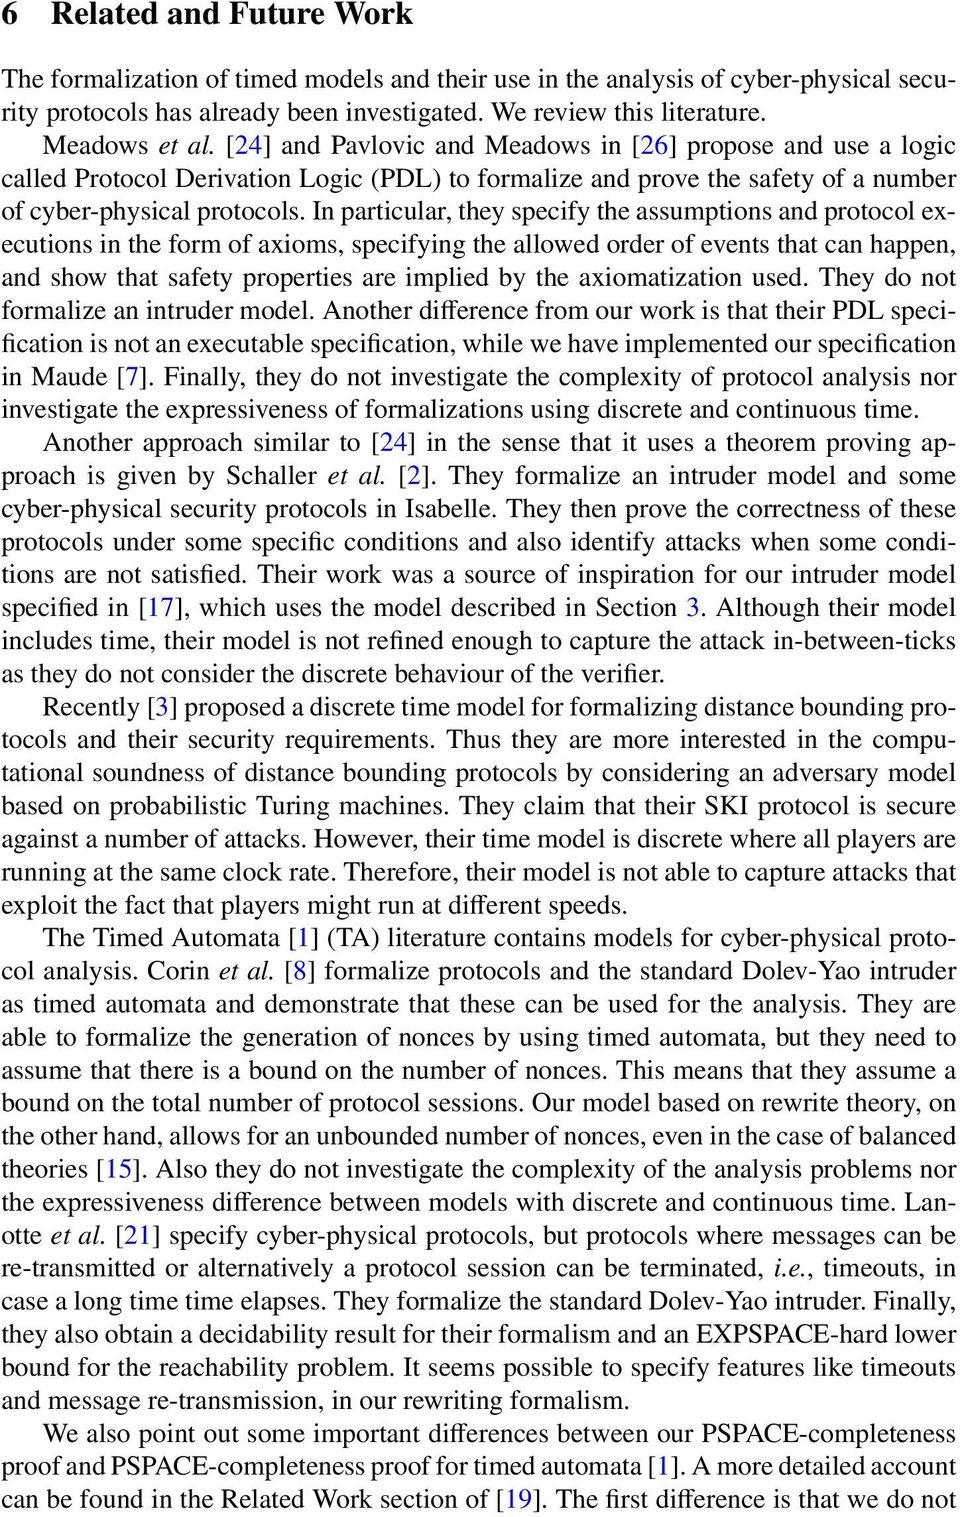 In particular, they specify the assumptions and protocol executions in the form of axioms, specifying the allowed order of events that can happen, and show that safety properties are implied by the